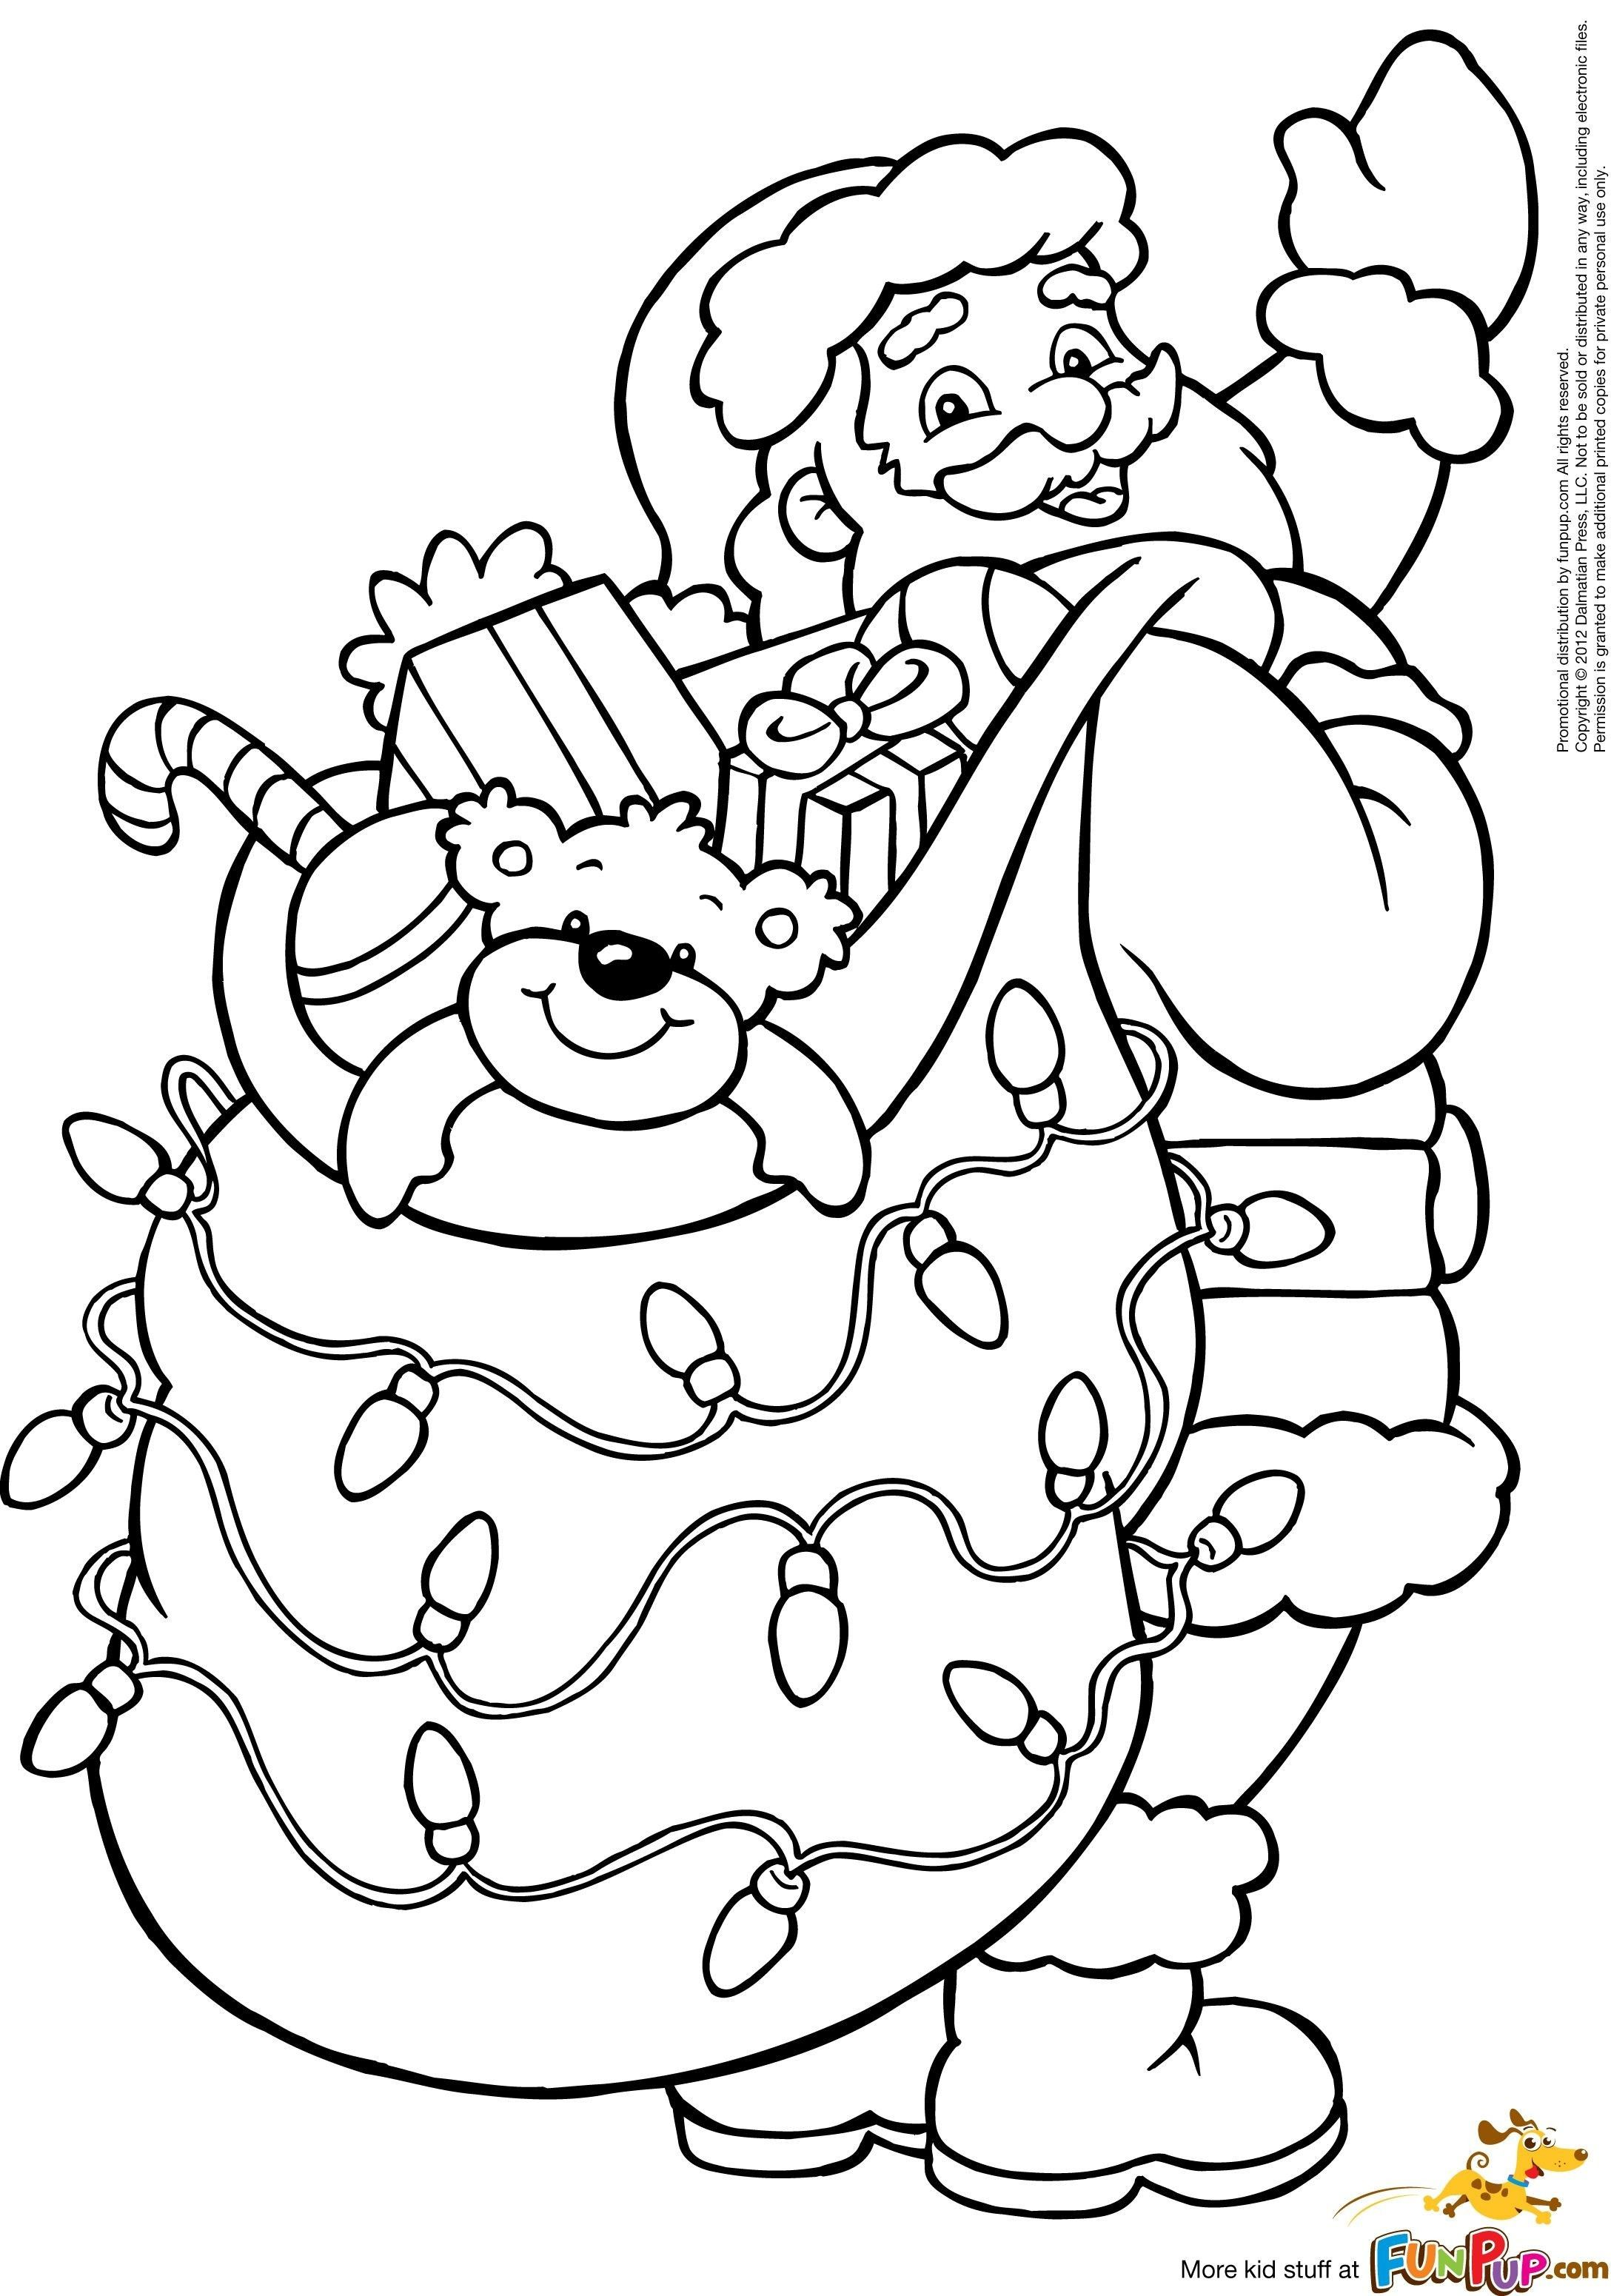 New Father Christmas Colouring Pages Coloring Coloringpages Coloringpagesforkids Co Santa Coloring Pages Christmas Coloring Sheets Christmas Coloring Pages